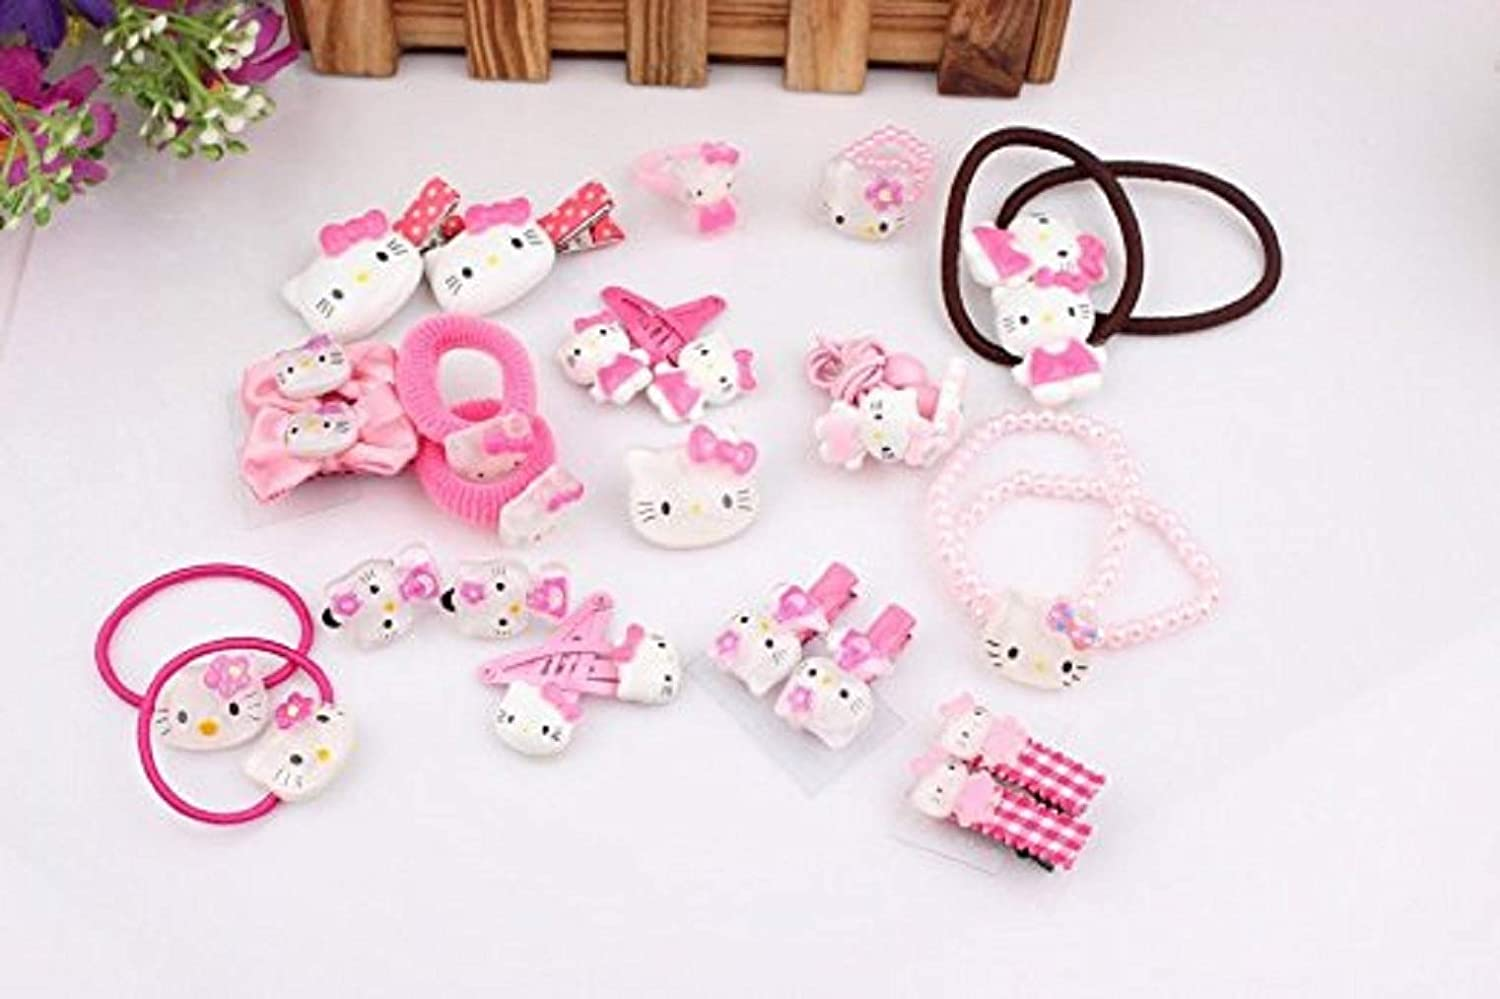 67a808bf3 Amazon.com: NiceGo Pink Hair Bows Clips for Girls – Hello Kitty Ribbon  Boutique Kids Hair Accessories For Babies Teens Kids Toddlers & Newborn -  Hairpin Bow ...